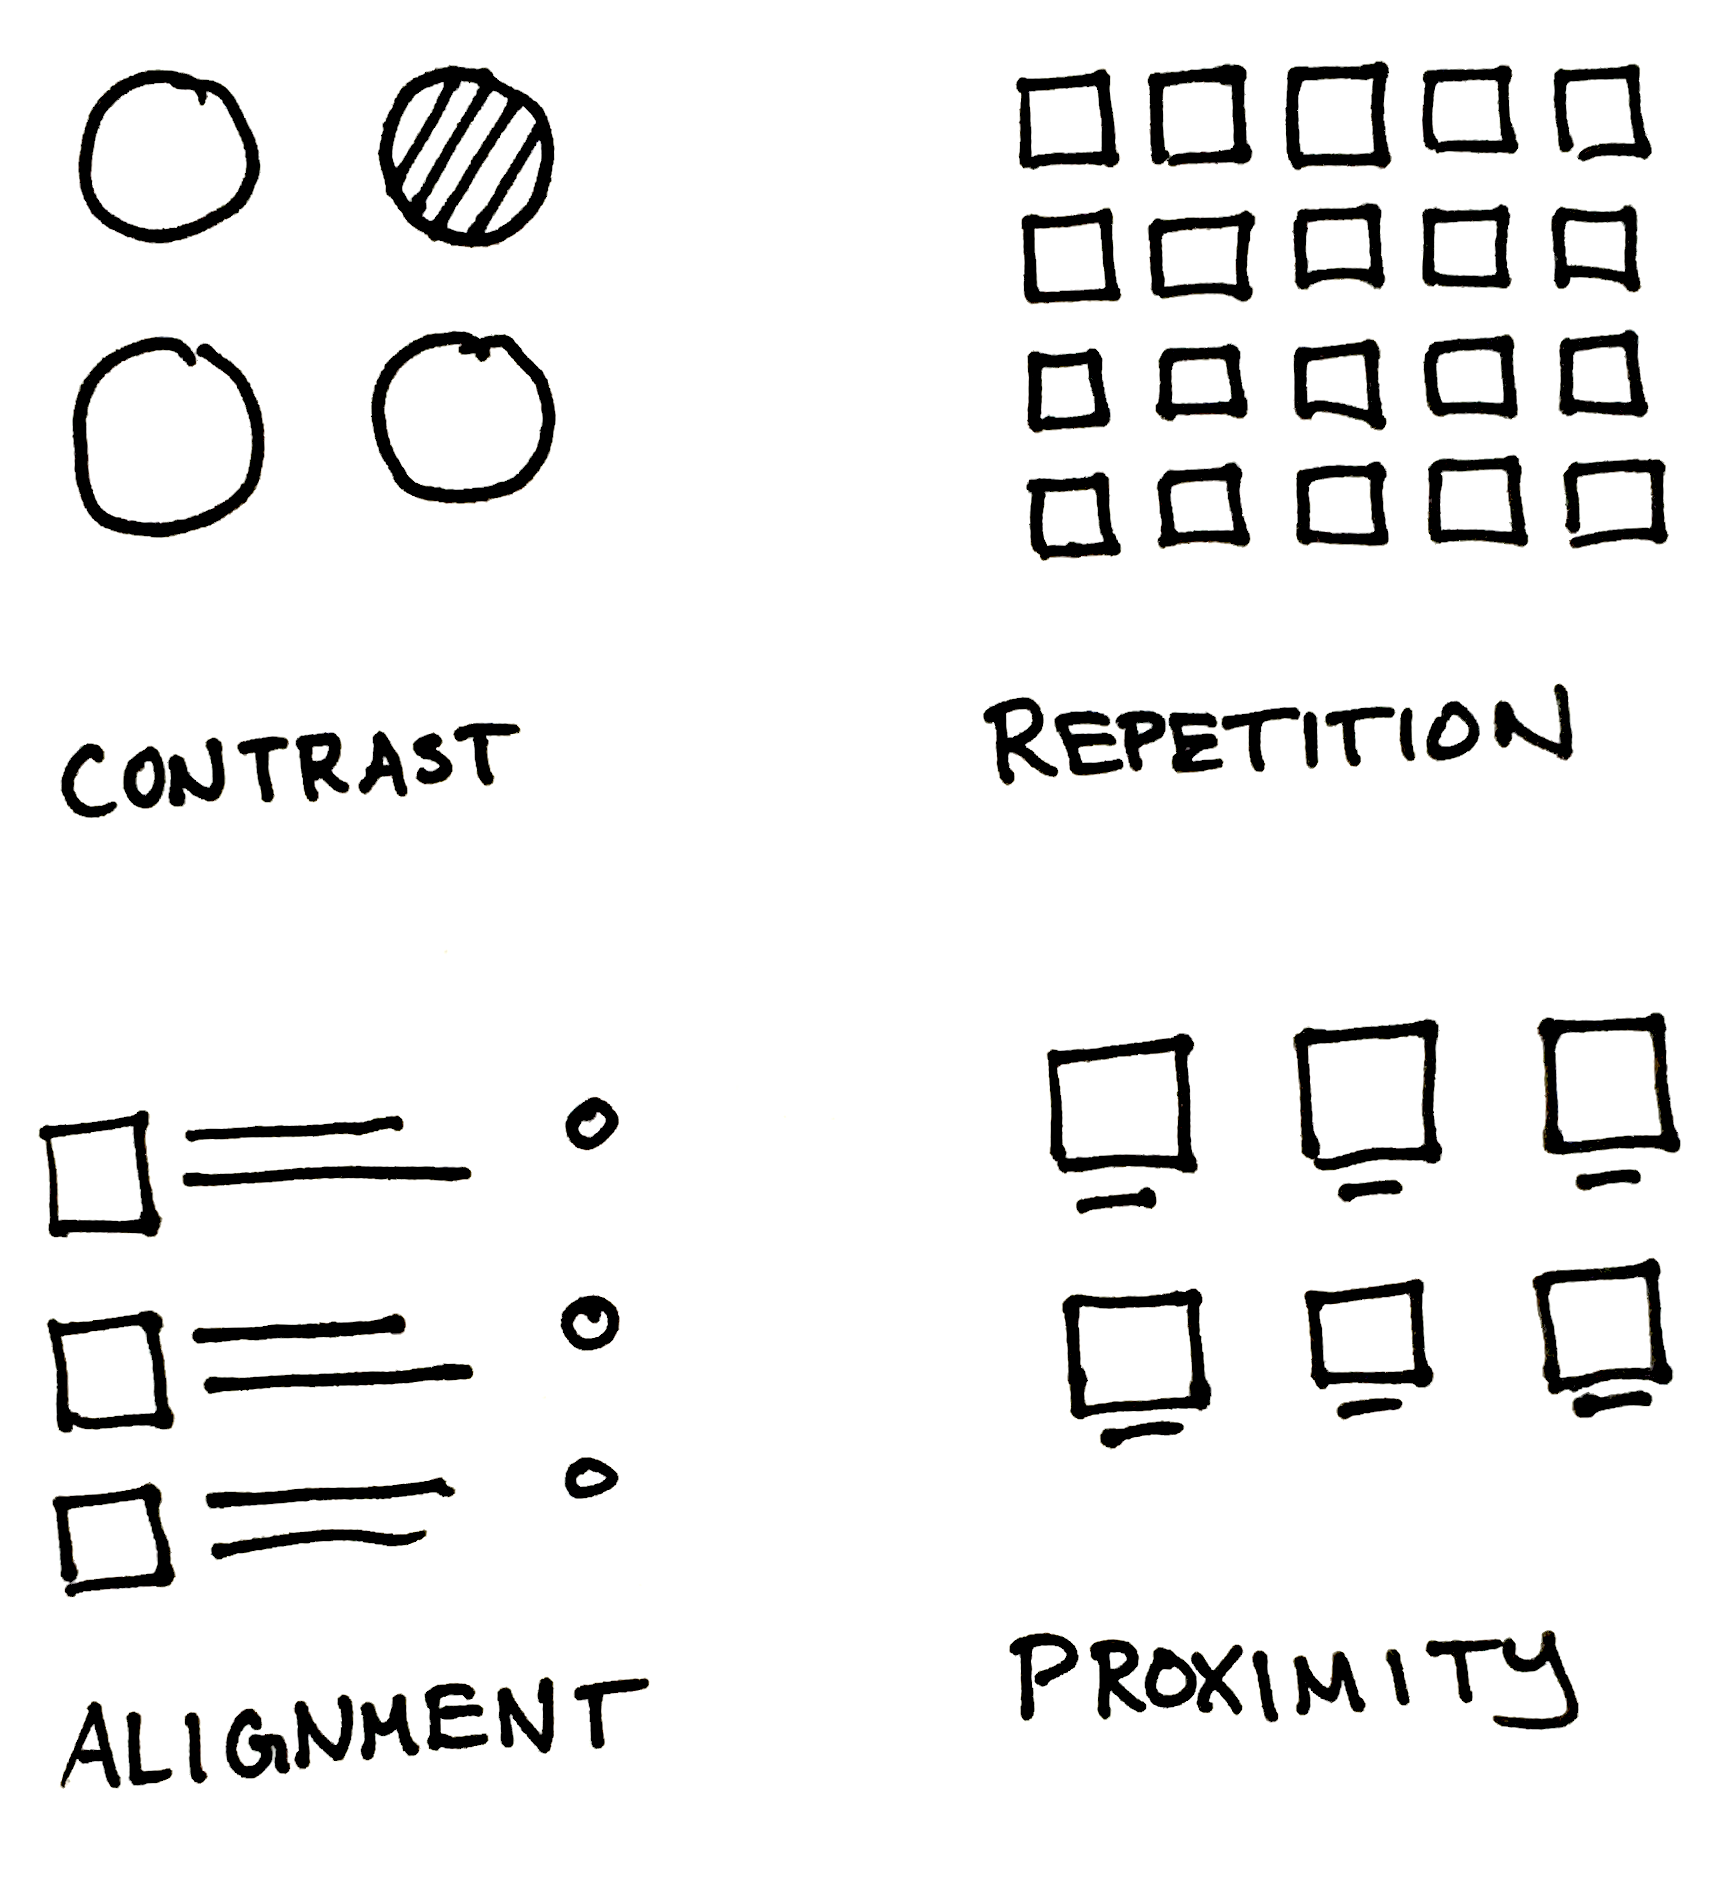 Illustration of CRAP design principles: contrast, repetition, alignment, and proximity